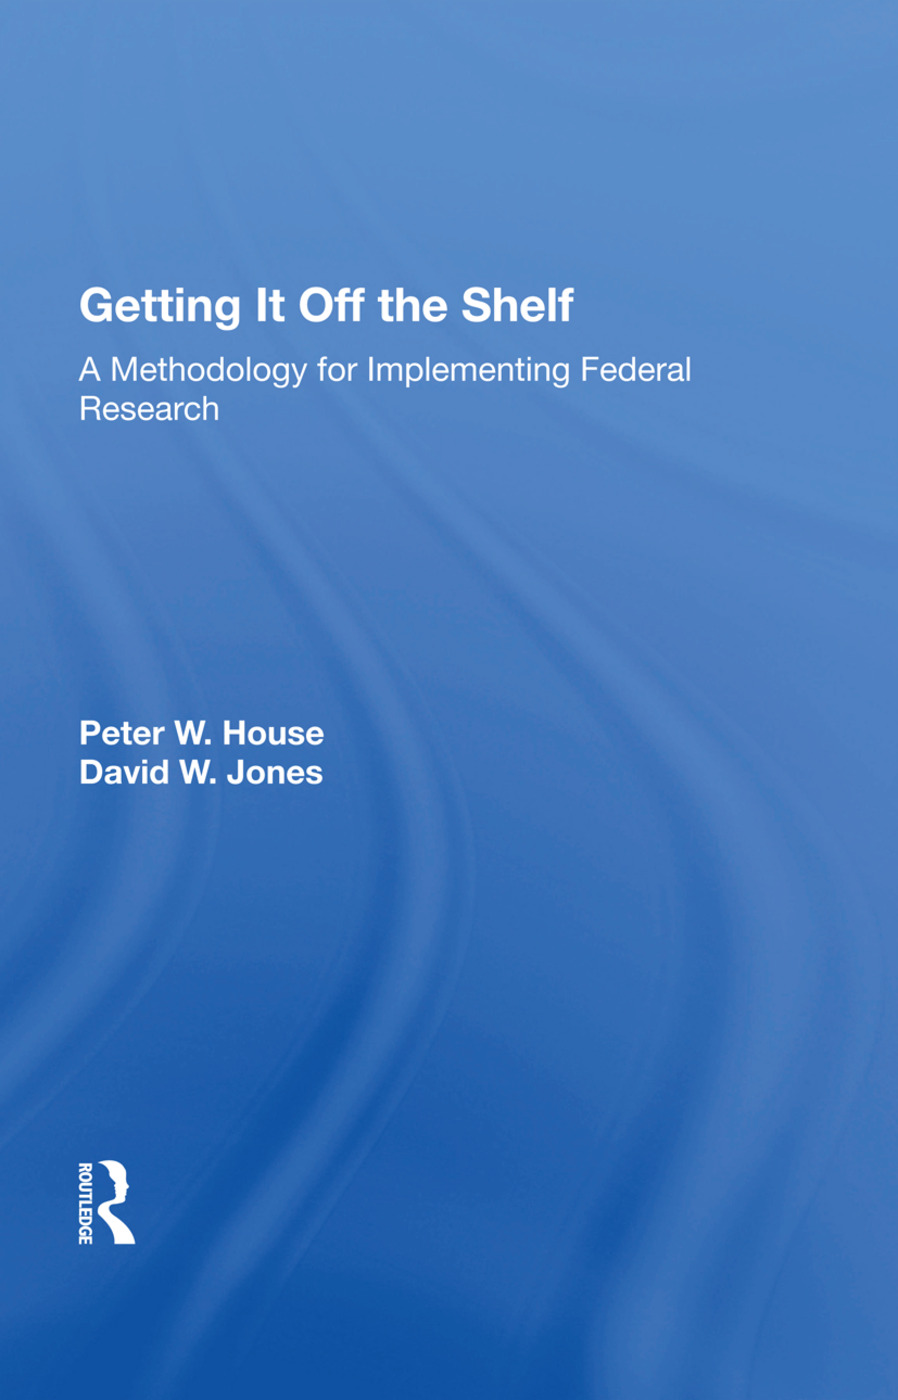 Getting It Off The Shelf book cover